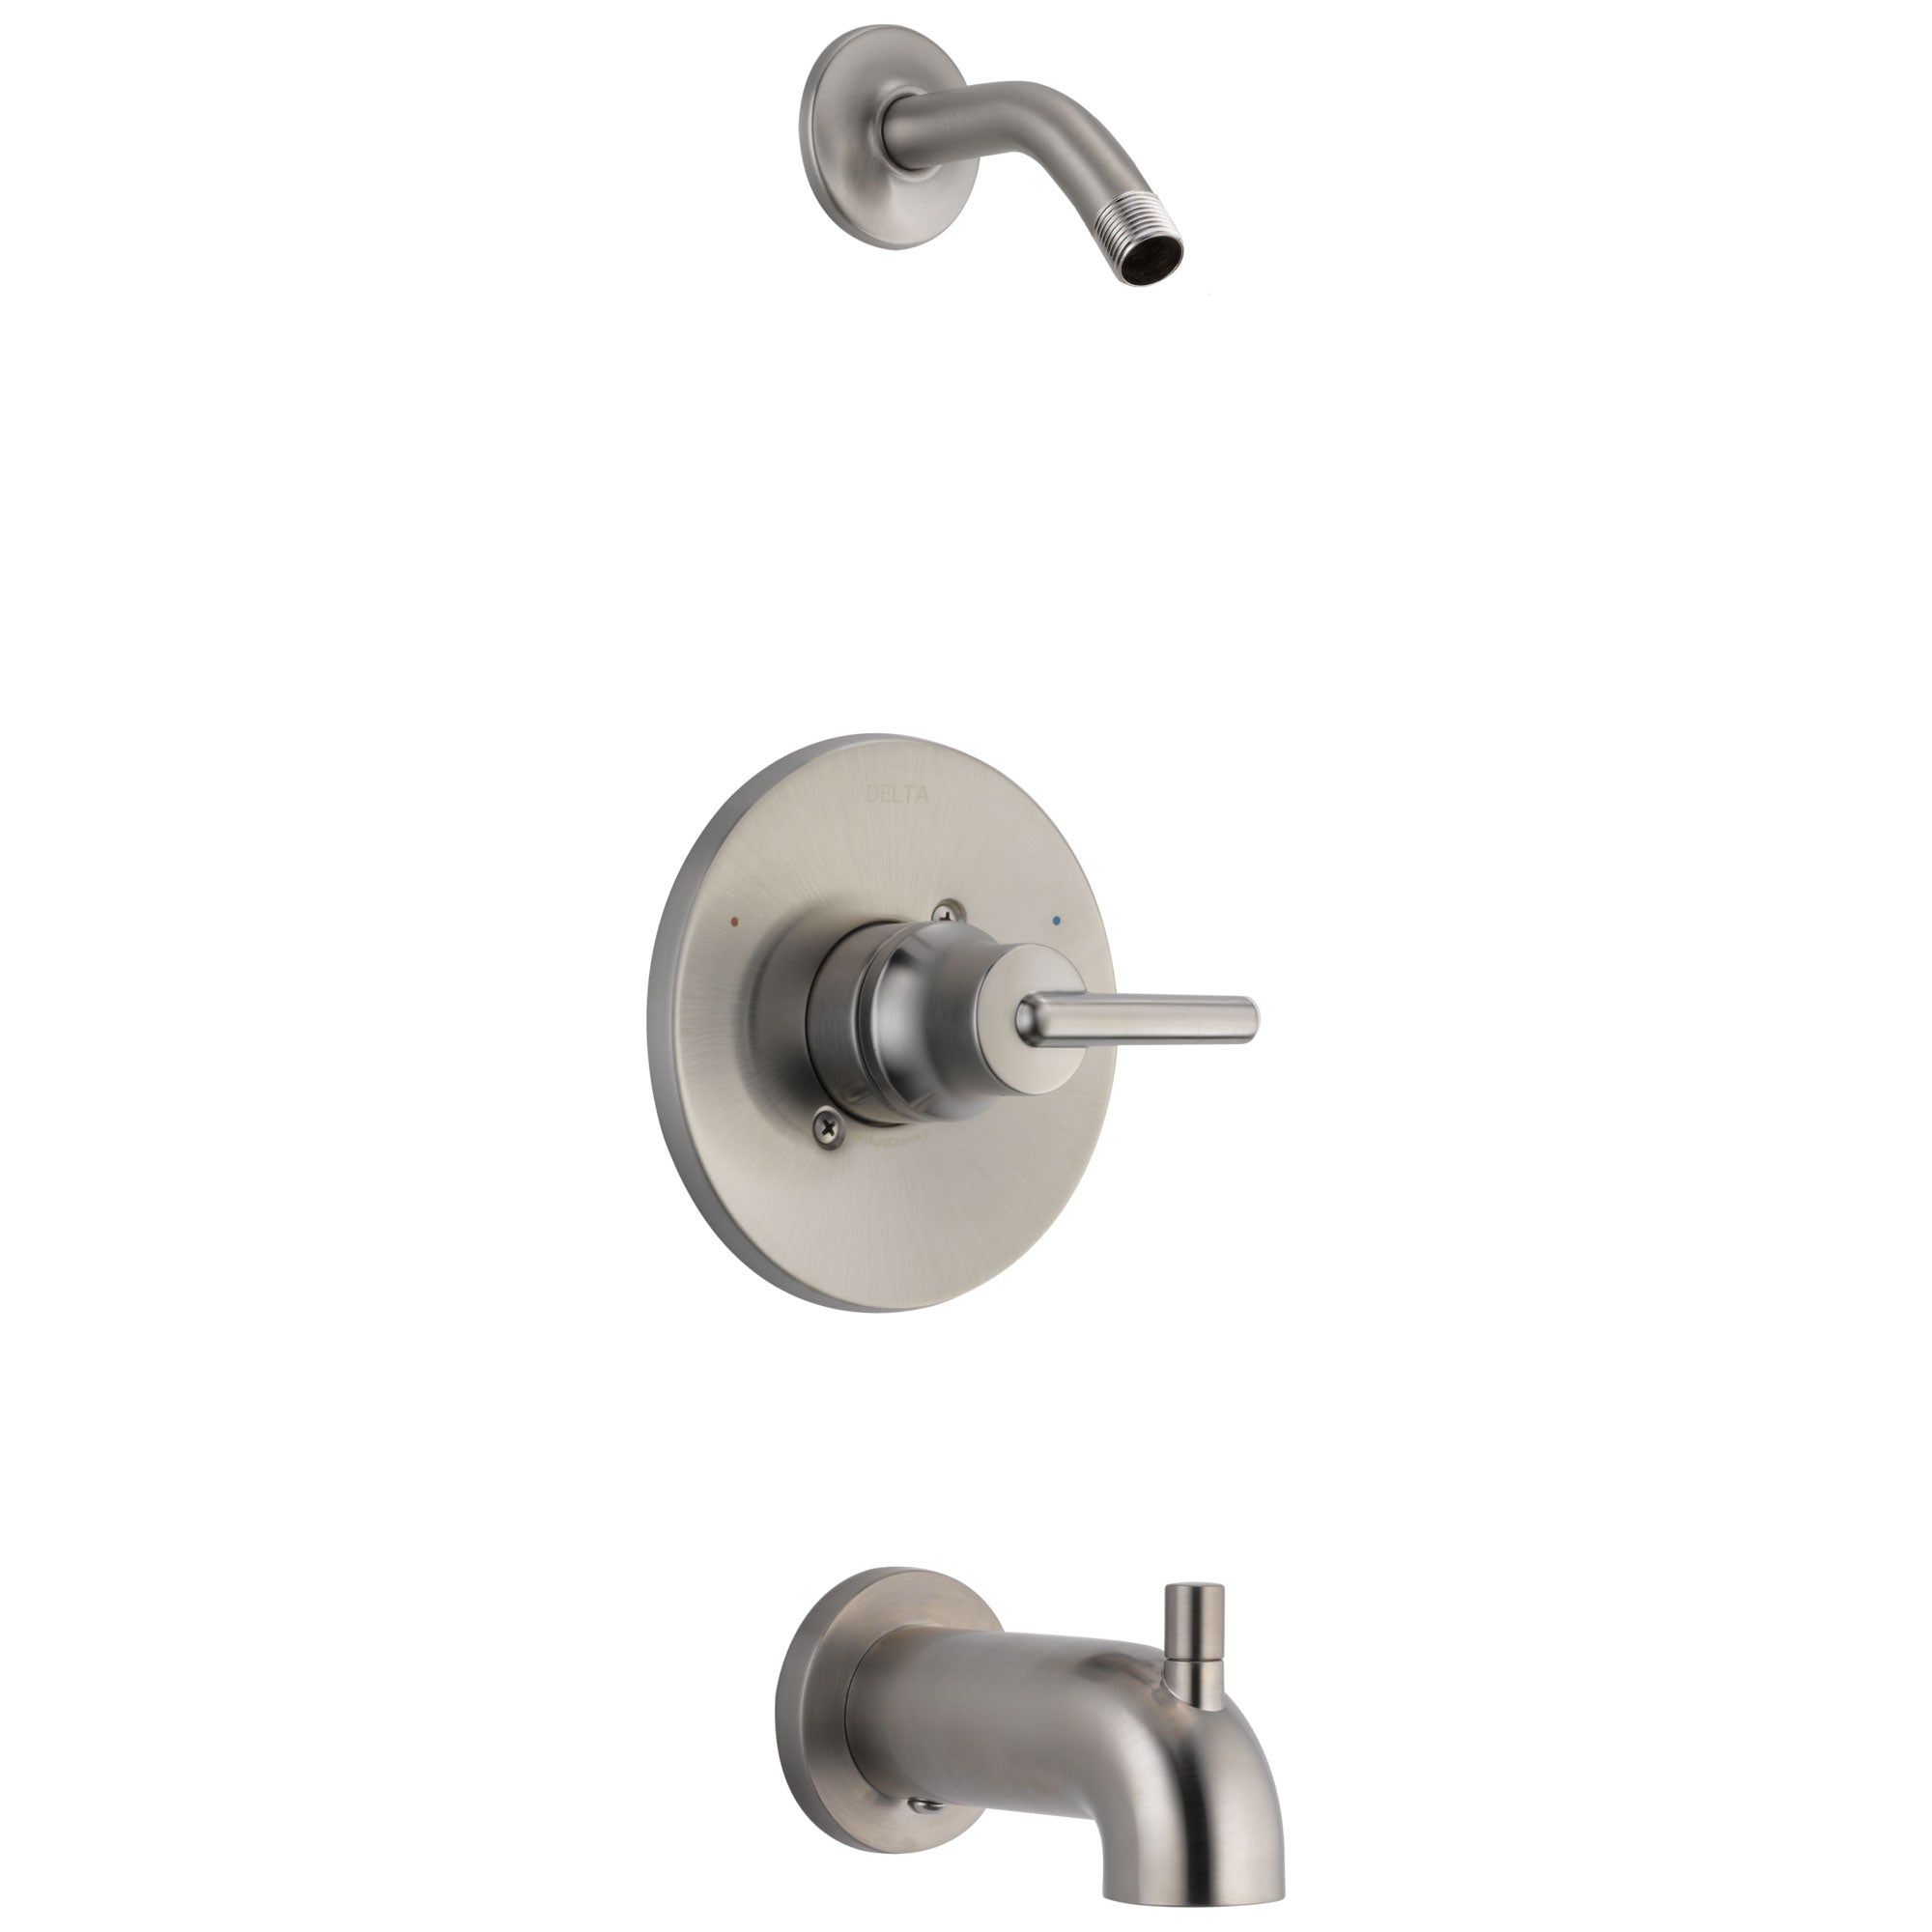 Delta Trinsic Collection Stainless Steel Finish Modern Lever Tub and Shower Combination Faucet Trim - Less Showerhead (Requires Valve) DT14459SSLHD